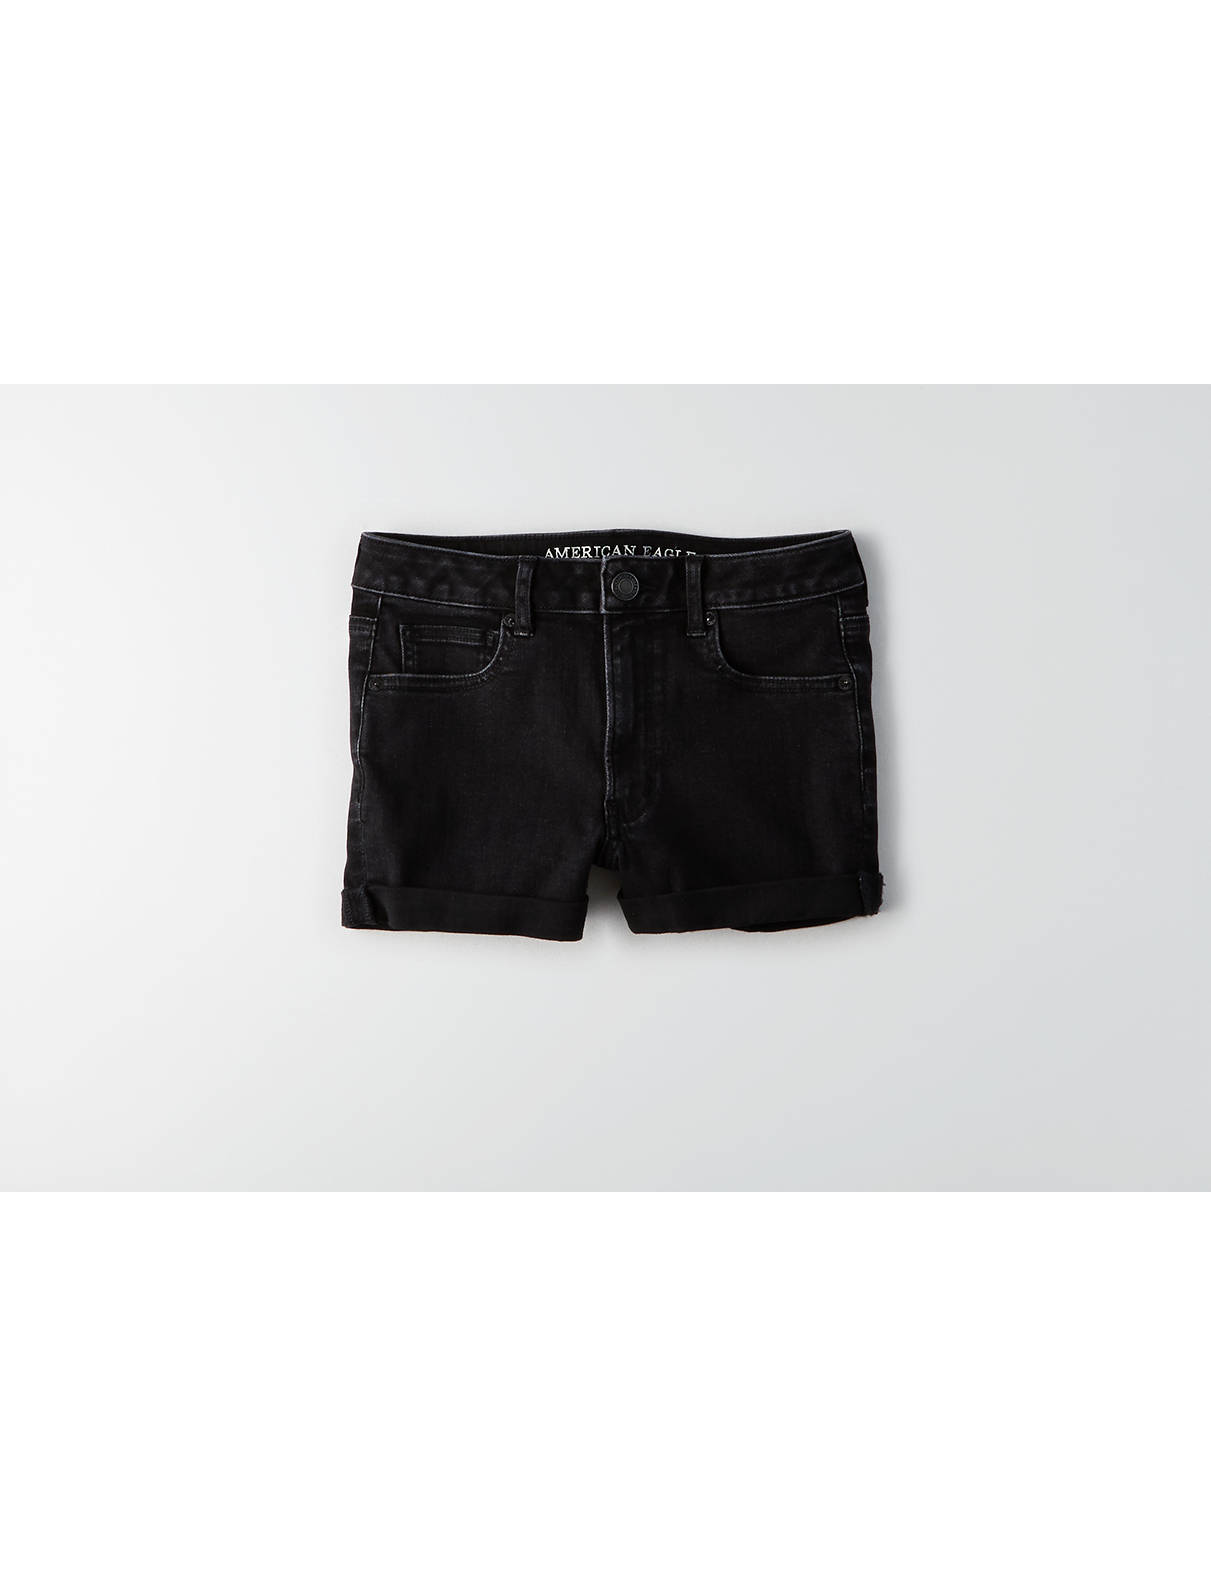 Women's Shorts   American Eagle Outfitters